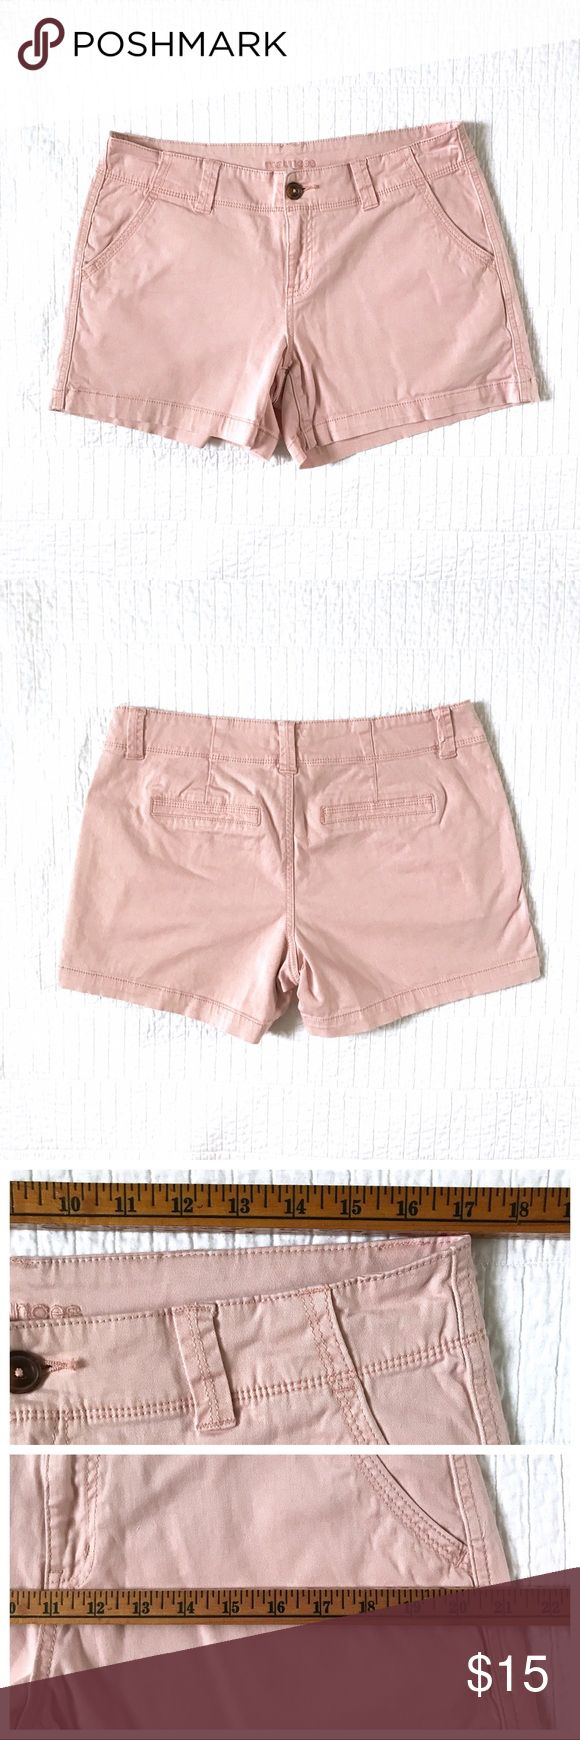 "Maurices light pink / blush chino shorts I love the relaxed cut of these chino shorts from Maurices! The perfect 5"" length isn't too short or too long. Light pink / blush color looks great w/ black, gray, white, navy, stripes and more; very versatile neutral tone. Back faux pockets means no bumps/bulges for a smooth bum. Two front pockets. Top stitching throughout. Cool, comfortable cotton with a hint of stretch. Size 11/12; see photos for measurements. In great condition! Some fading around…"